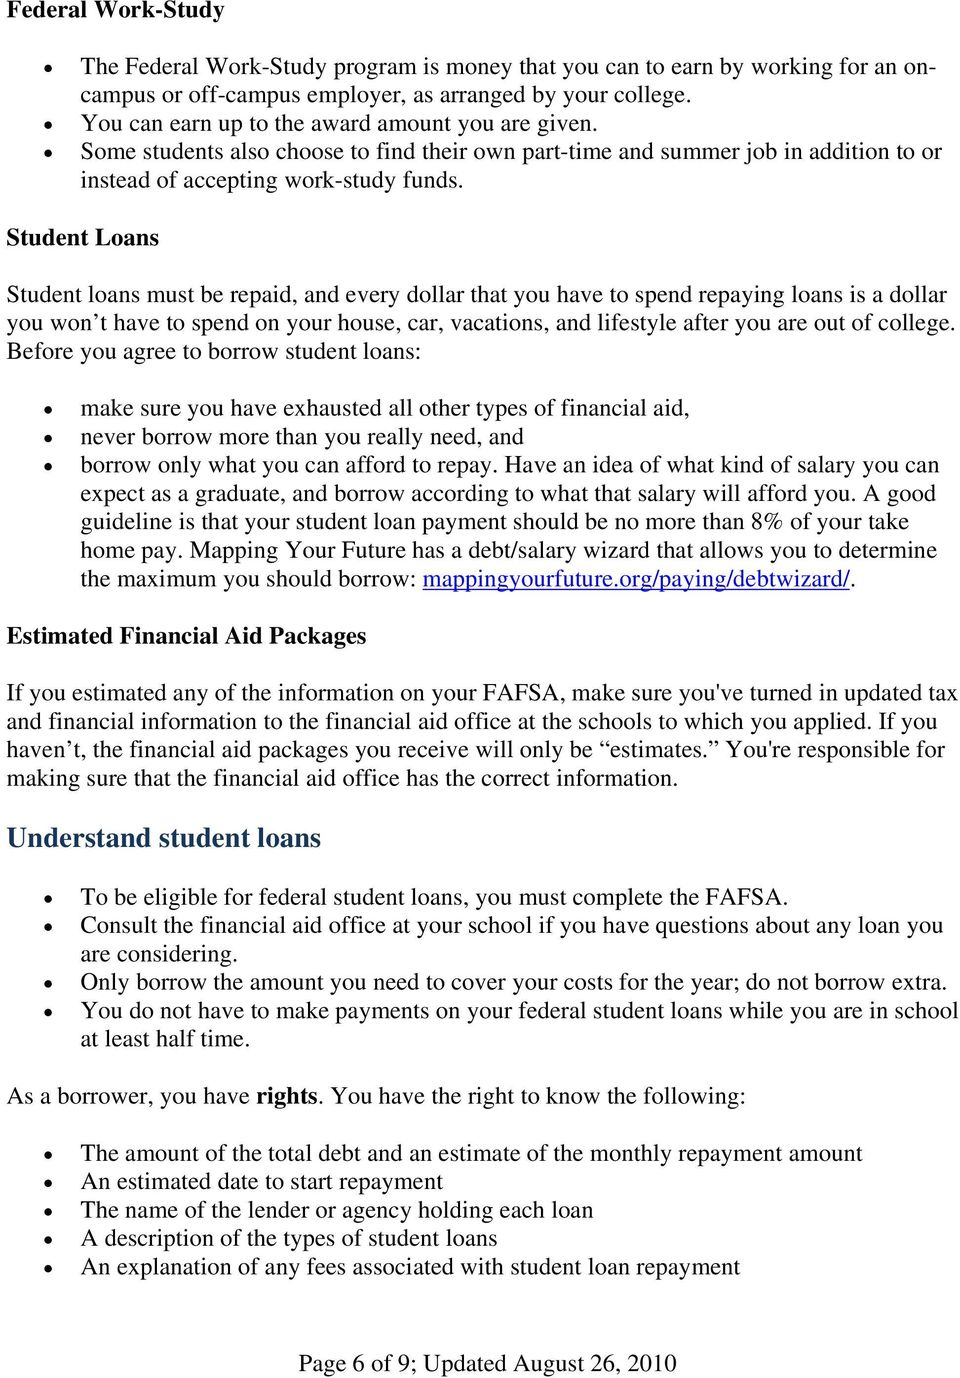 Student Loans Student loans must be repaid, and every dollar that you have to spend repaying loans is a dollar you won t have to spend on your house, car, vacations, and lifestyle after you are out